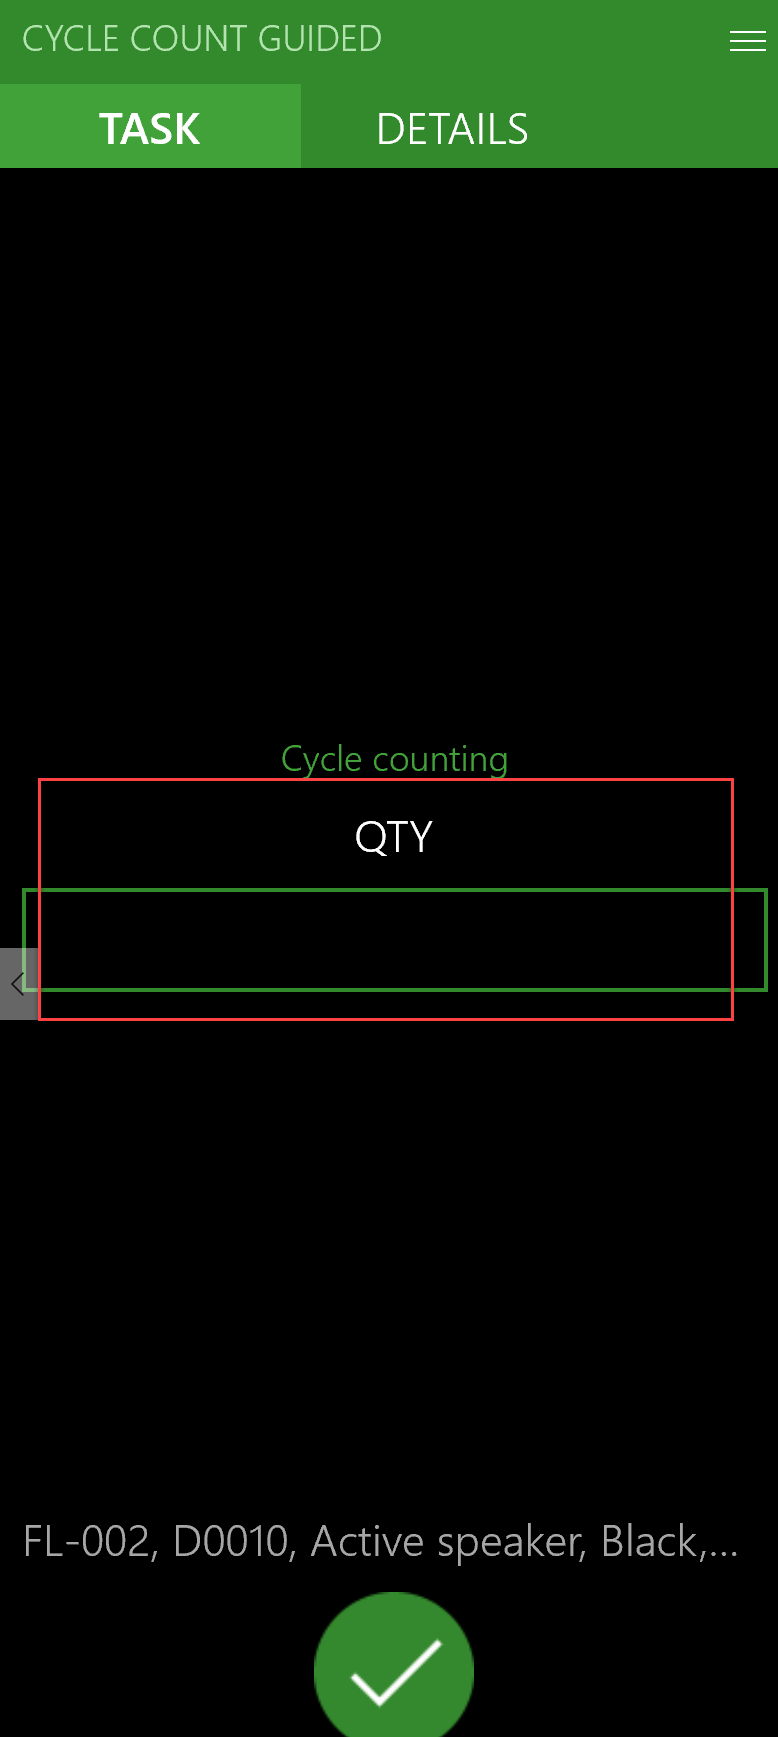 D365 Cycle Counting Guided Task Screenshot